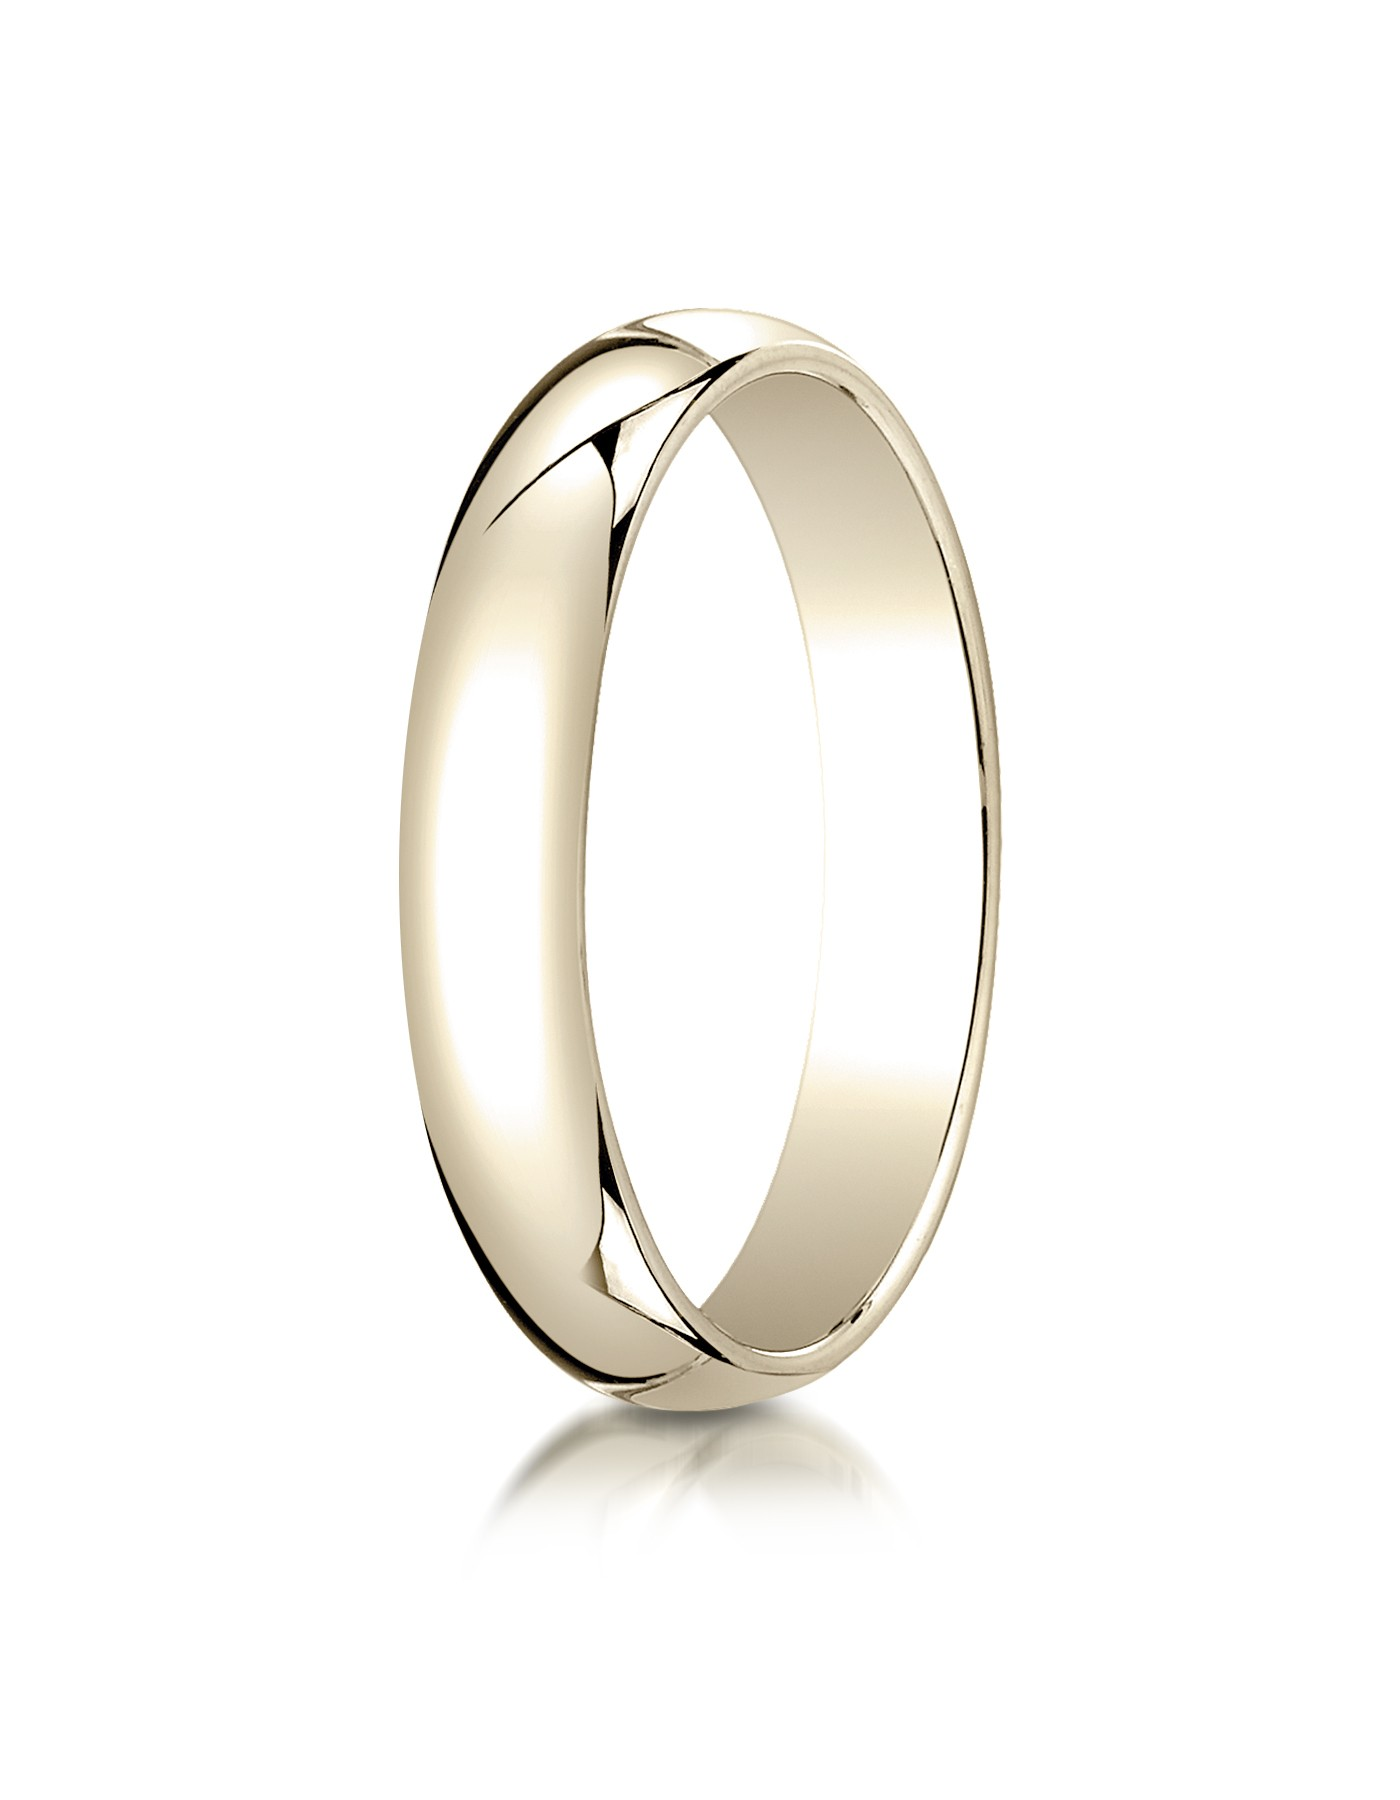 18k Yellow Gold 4mm Slightly Domed Traditional Oval Ring